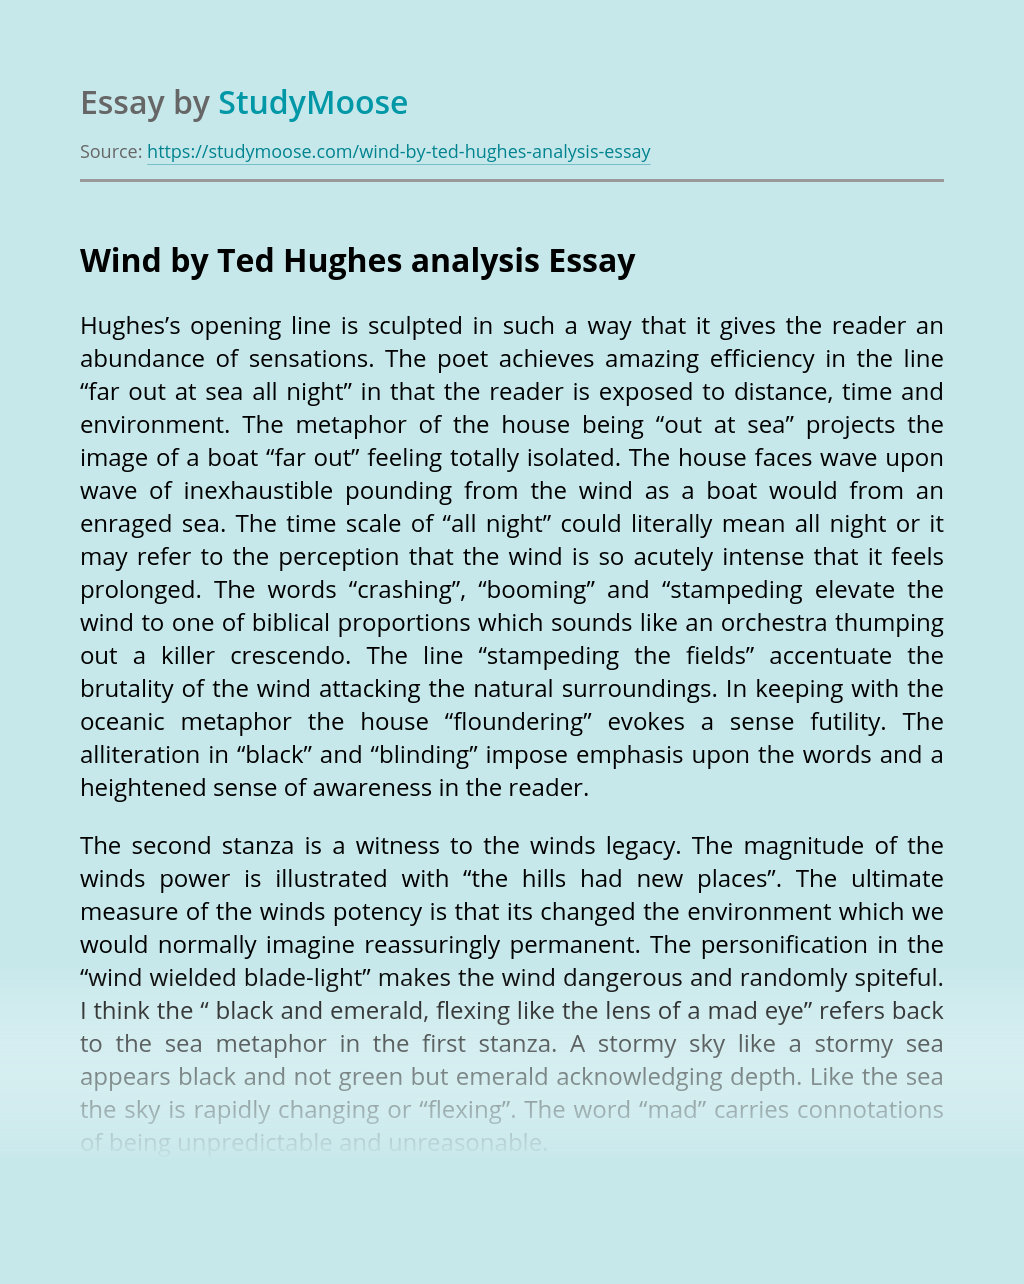 Wind by Ted Hughes analysis